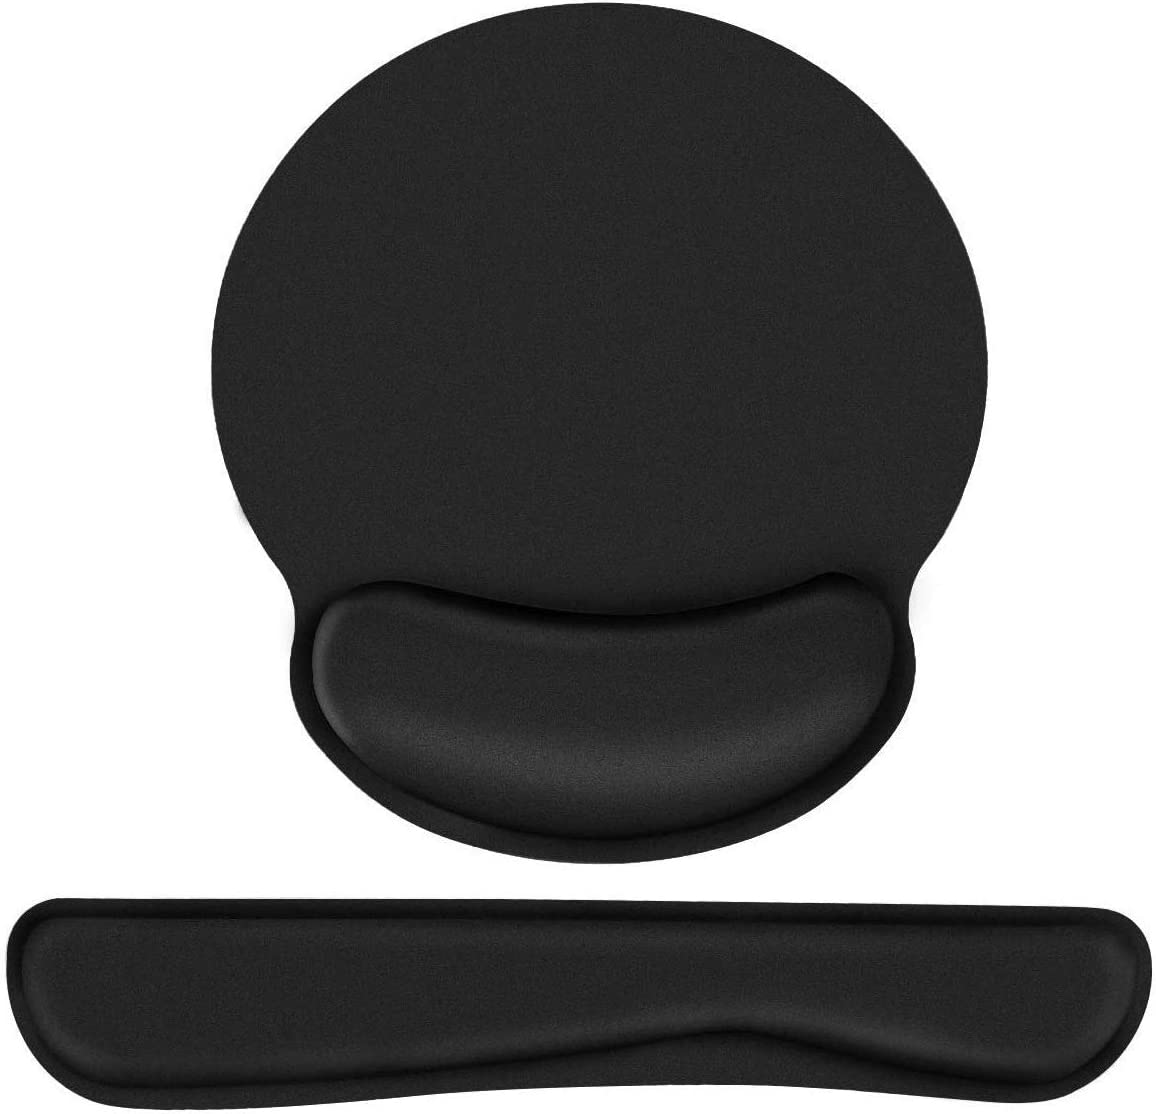 AODOOR Keyboard Wrist Rest Mouse Pad Wrist Support, Memory Foam Ergonomic Wrist Pain Relief, Non Slip Rubber Base, Great for Office Computer Mac MacBook Pro Laptop, 2 Pack, Black